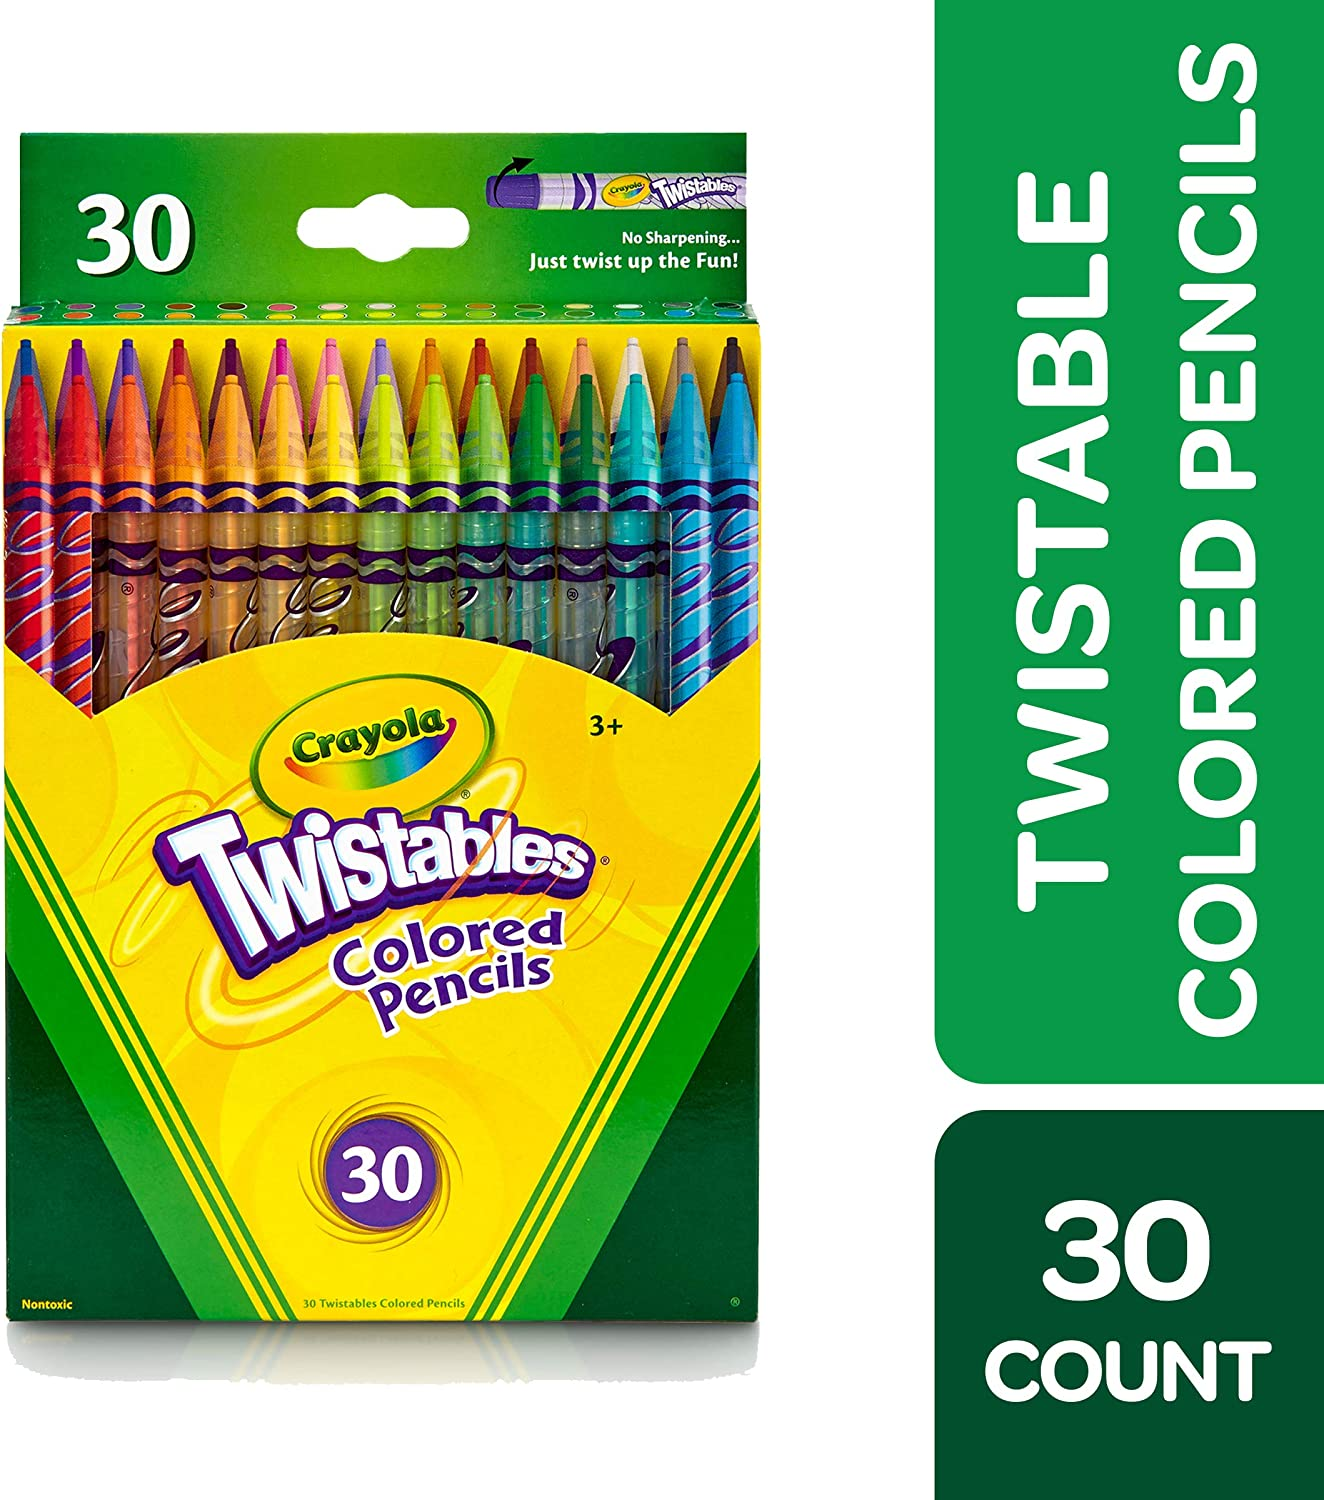 Crayola Twistables Colored Pencils, 30 Count, Assorted Colors, Gift: Toys & Games